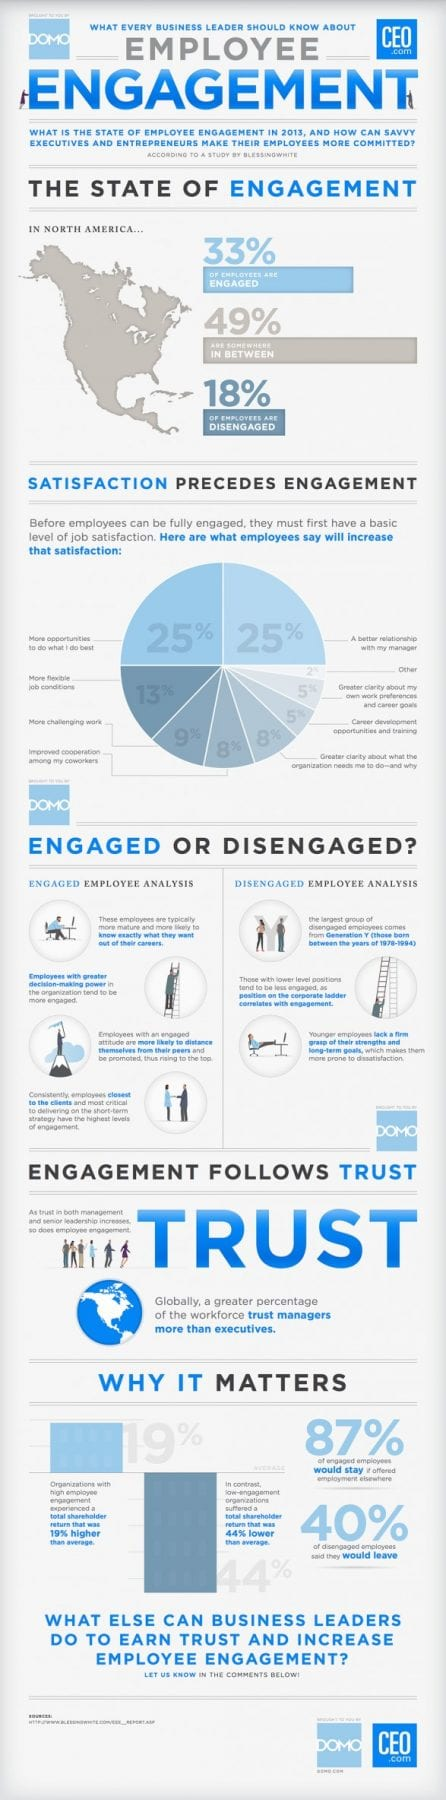 What CEOs Should Know About Employee Engagement